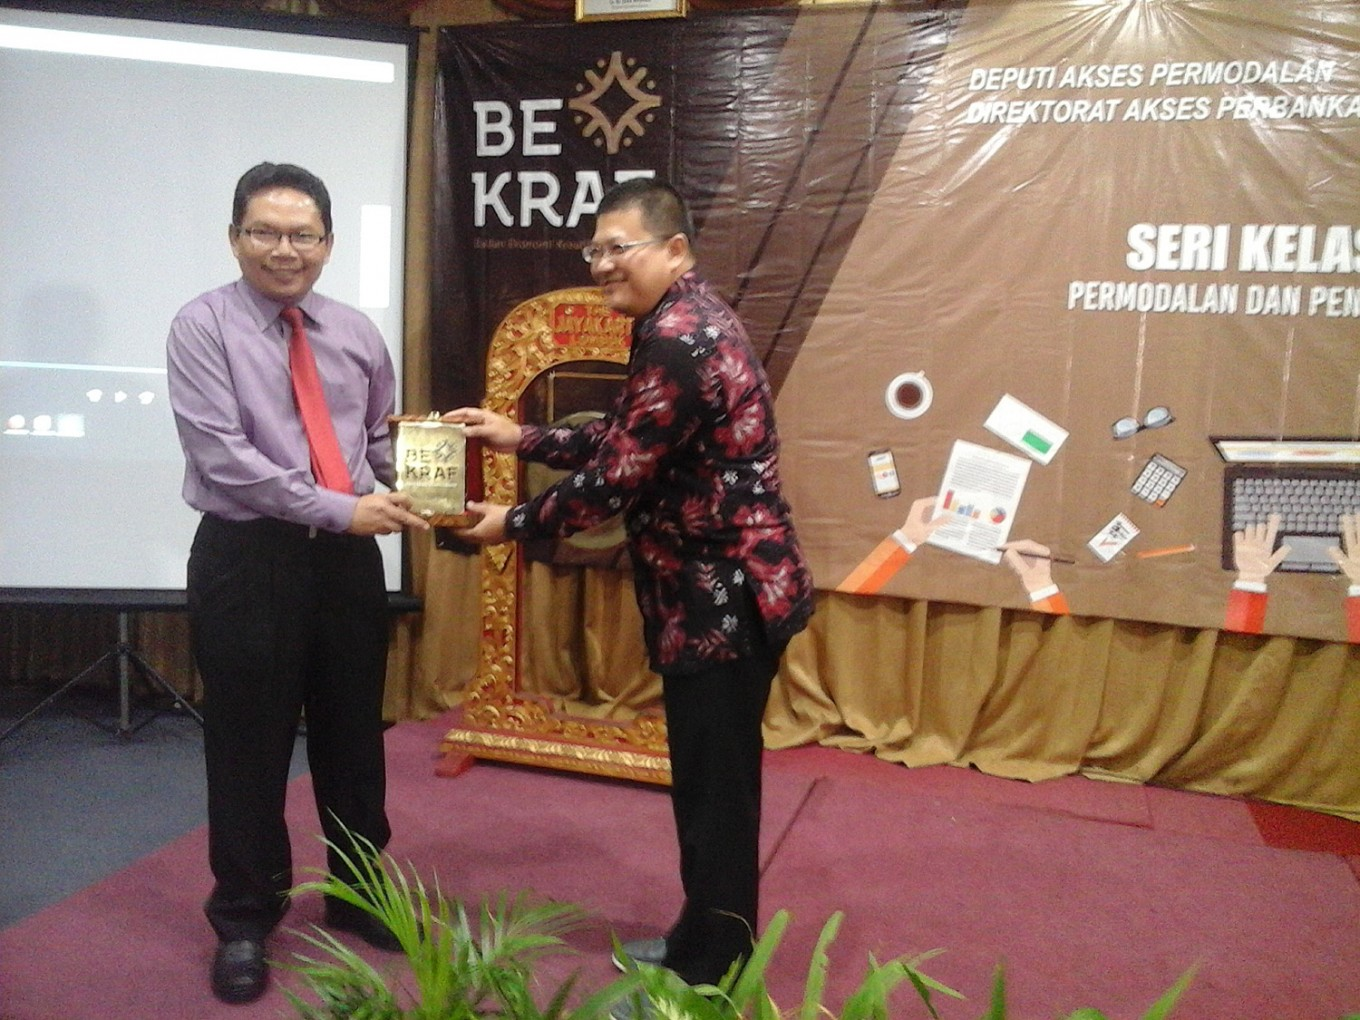 Bekraf provides Islamic finance training for creative economy players in NTB